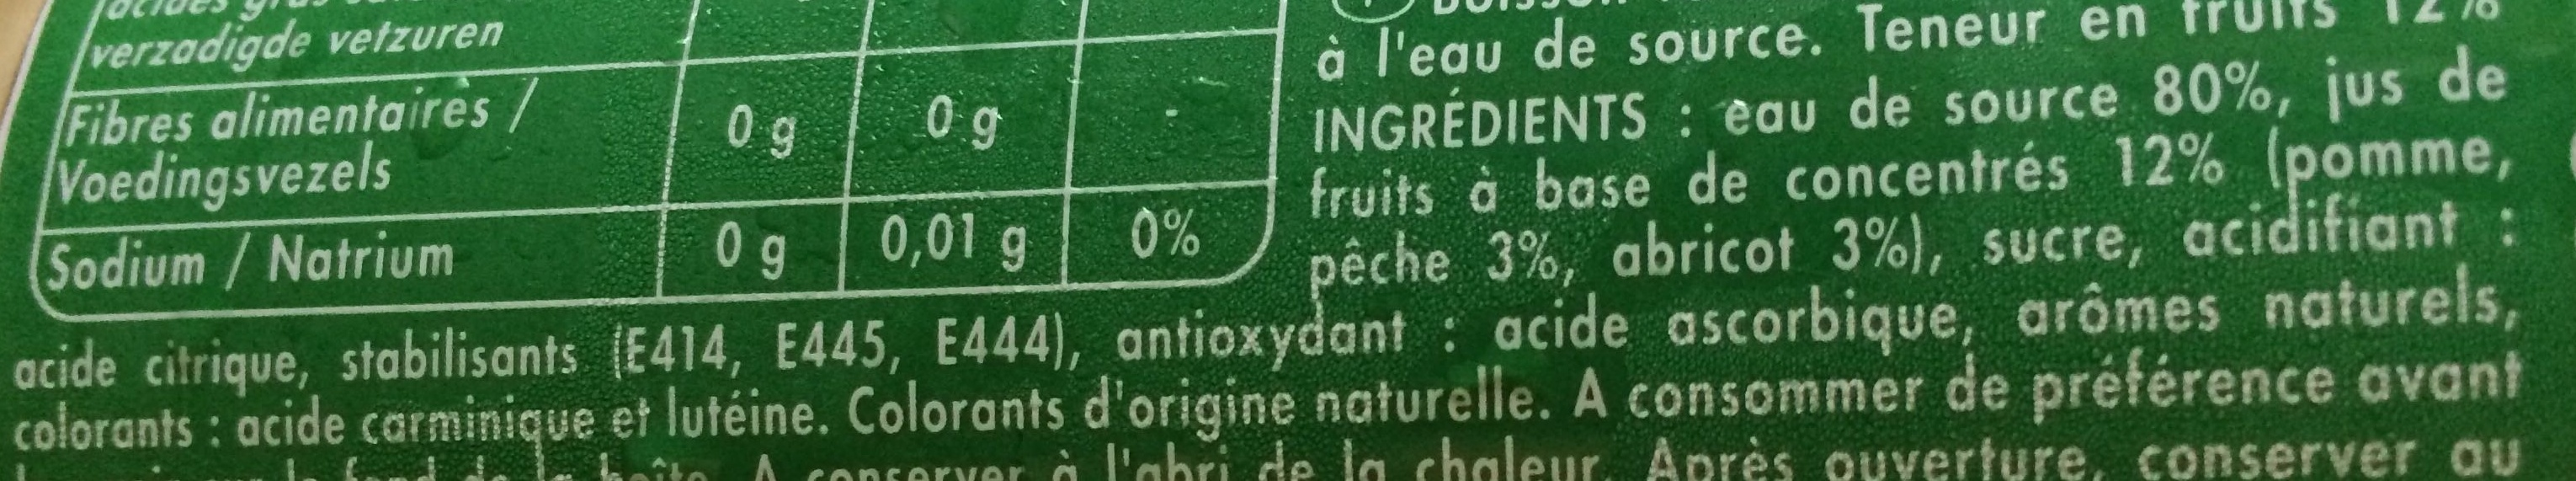 Pêche Abricot - Ingredients